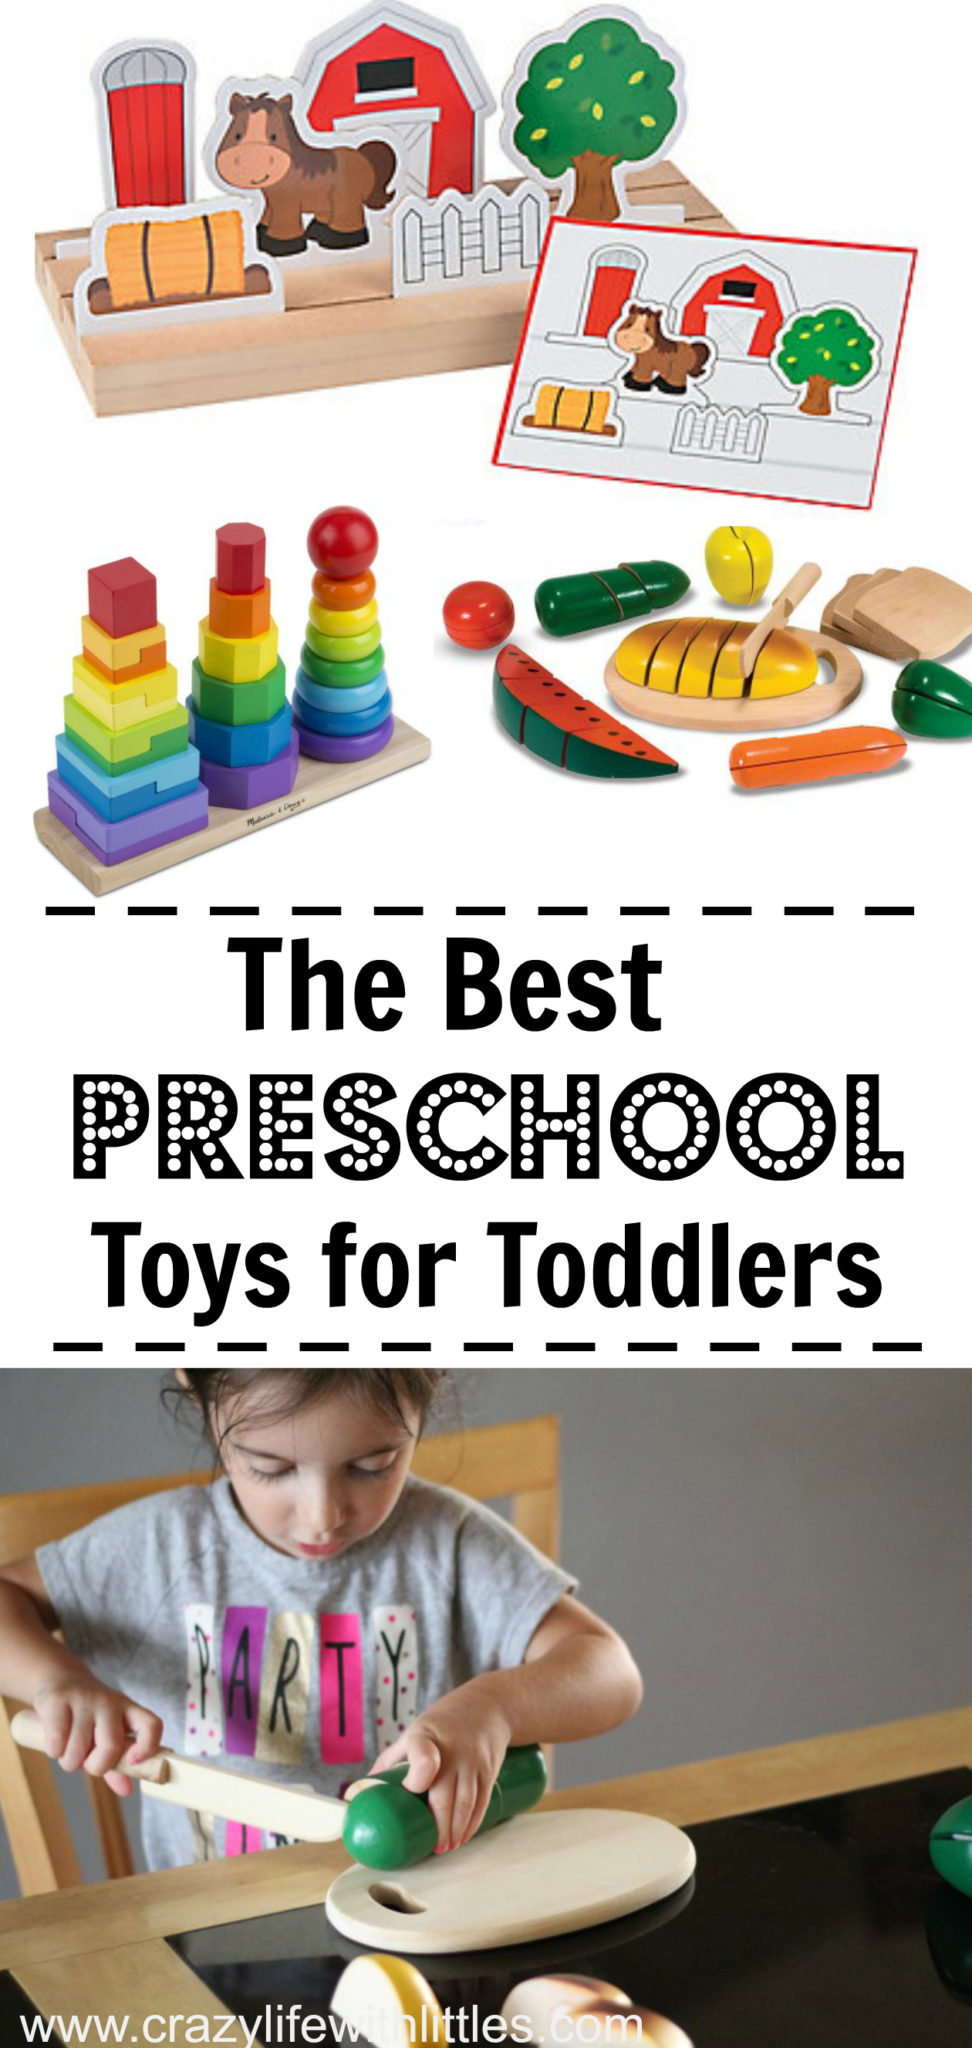 The Best Preschool Toys for Toddlers by Oriental Trading, preschool activities for 3 year olds, preschool activities at home, learning activities for preschoolers, toddler preschool activities